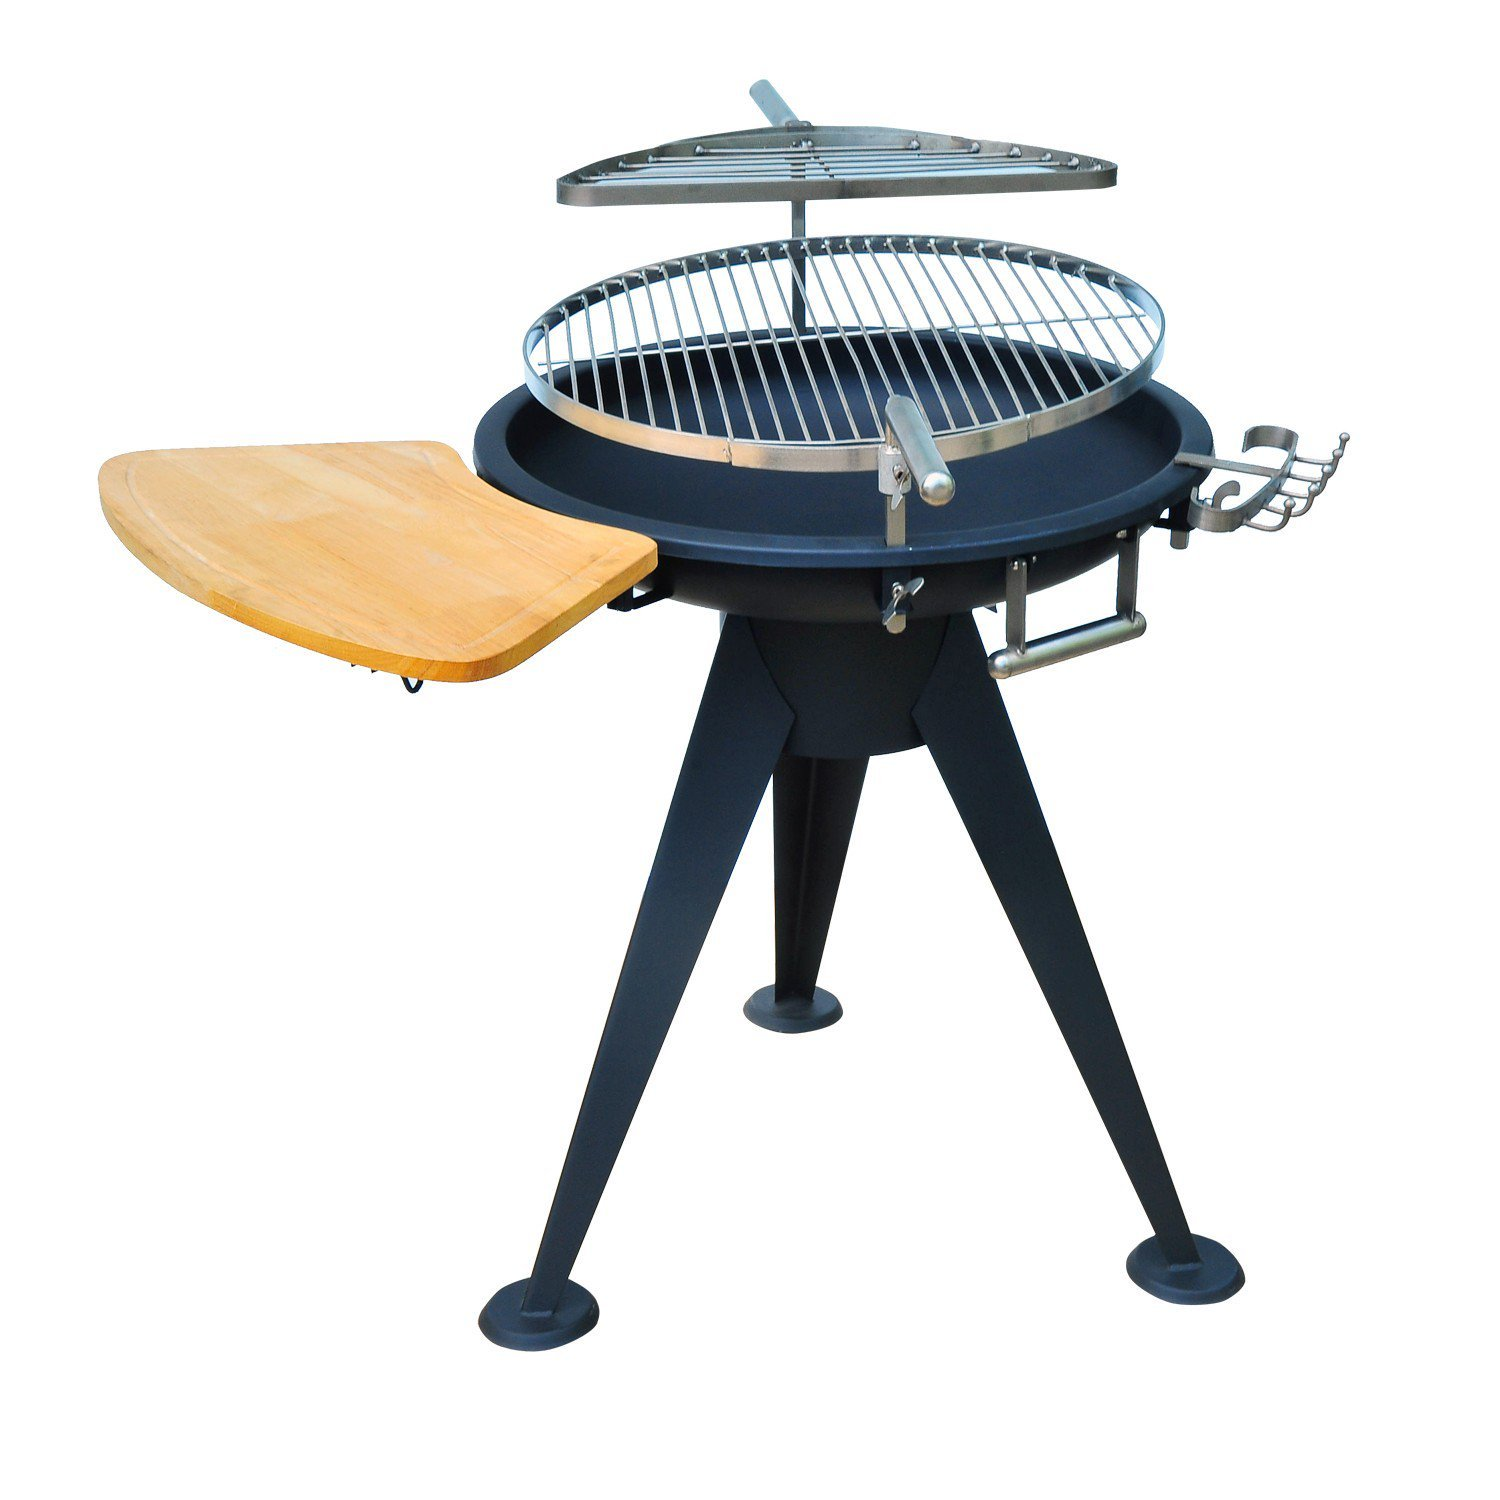 BBQ Round Grill Stove Firepit 22' Cooking Outdoor with ebook by MRT SUPPLY